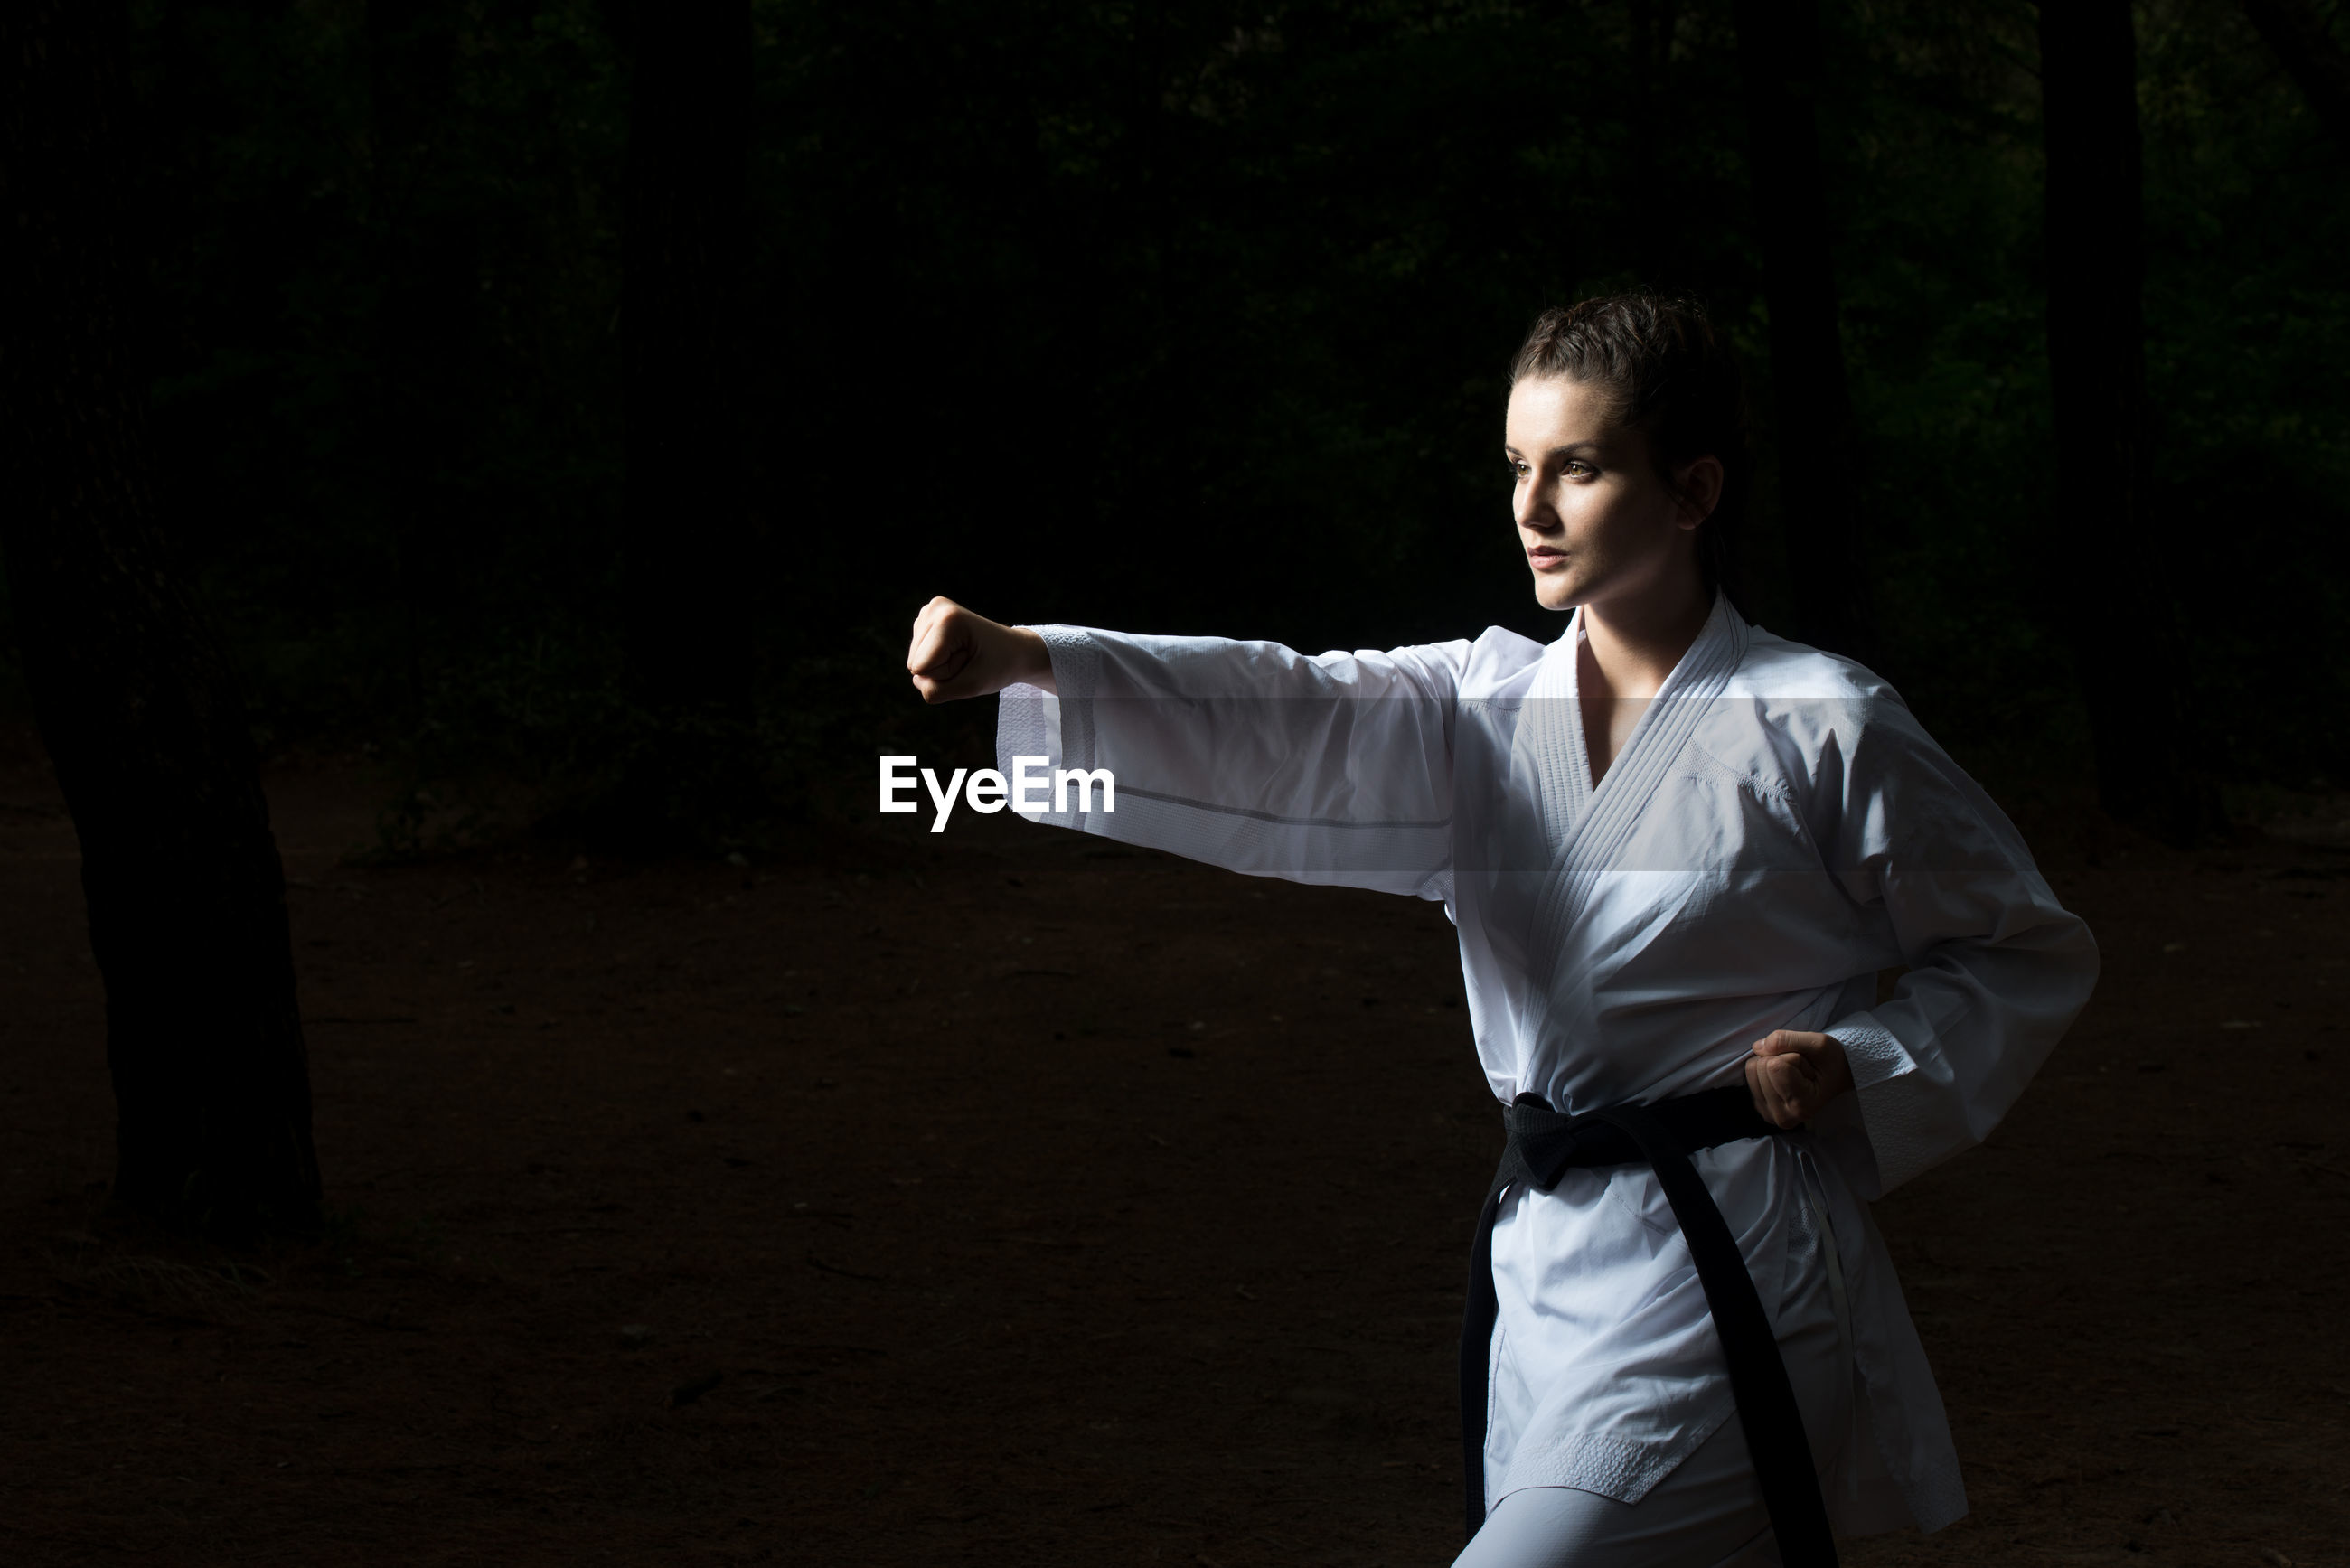 Woman practicing karate against black background